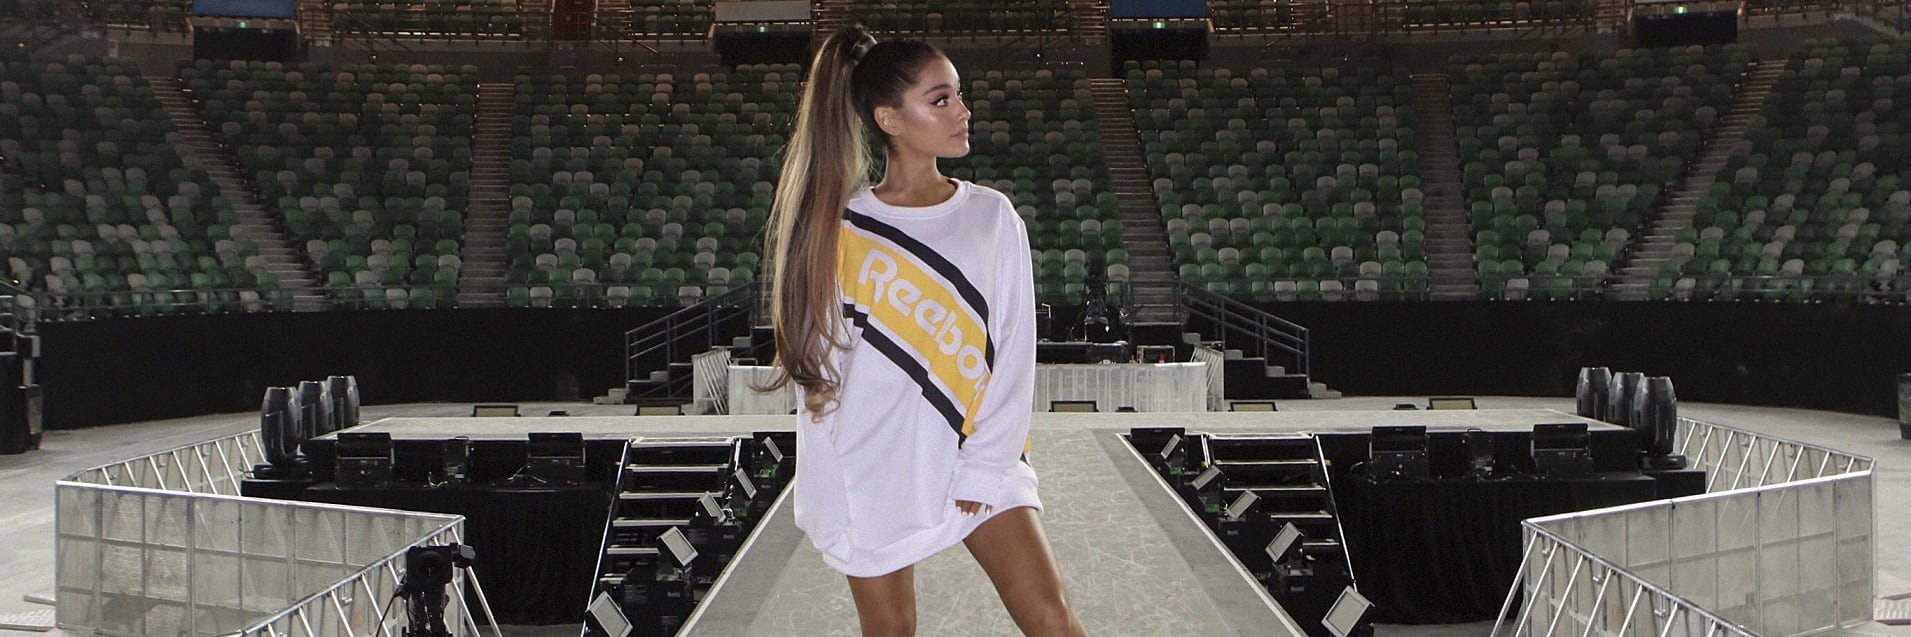 db1c8d06550 Ariana Grande and Reebok Team Up!